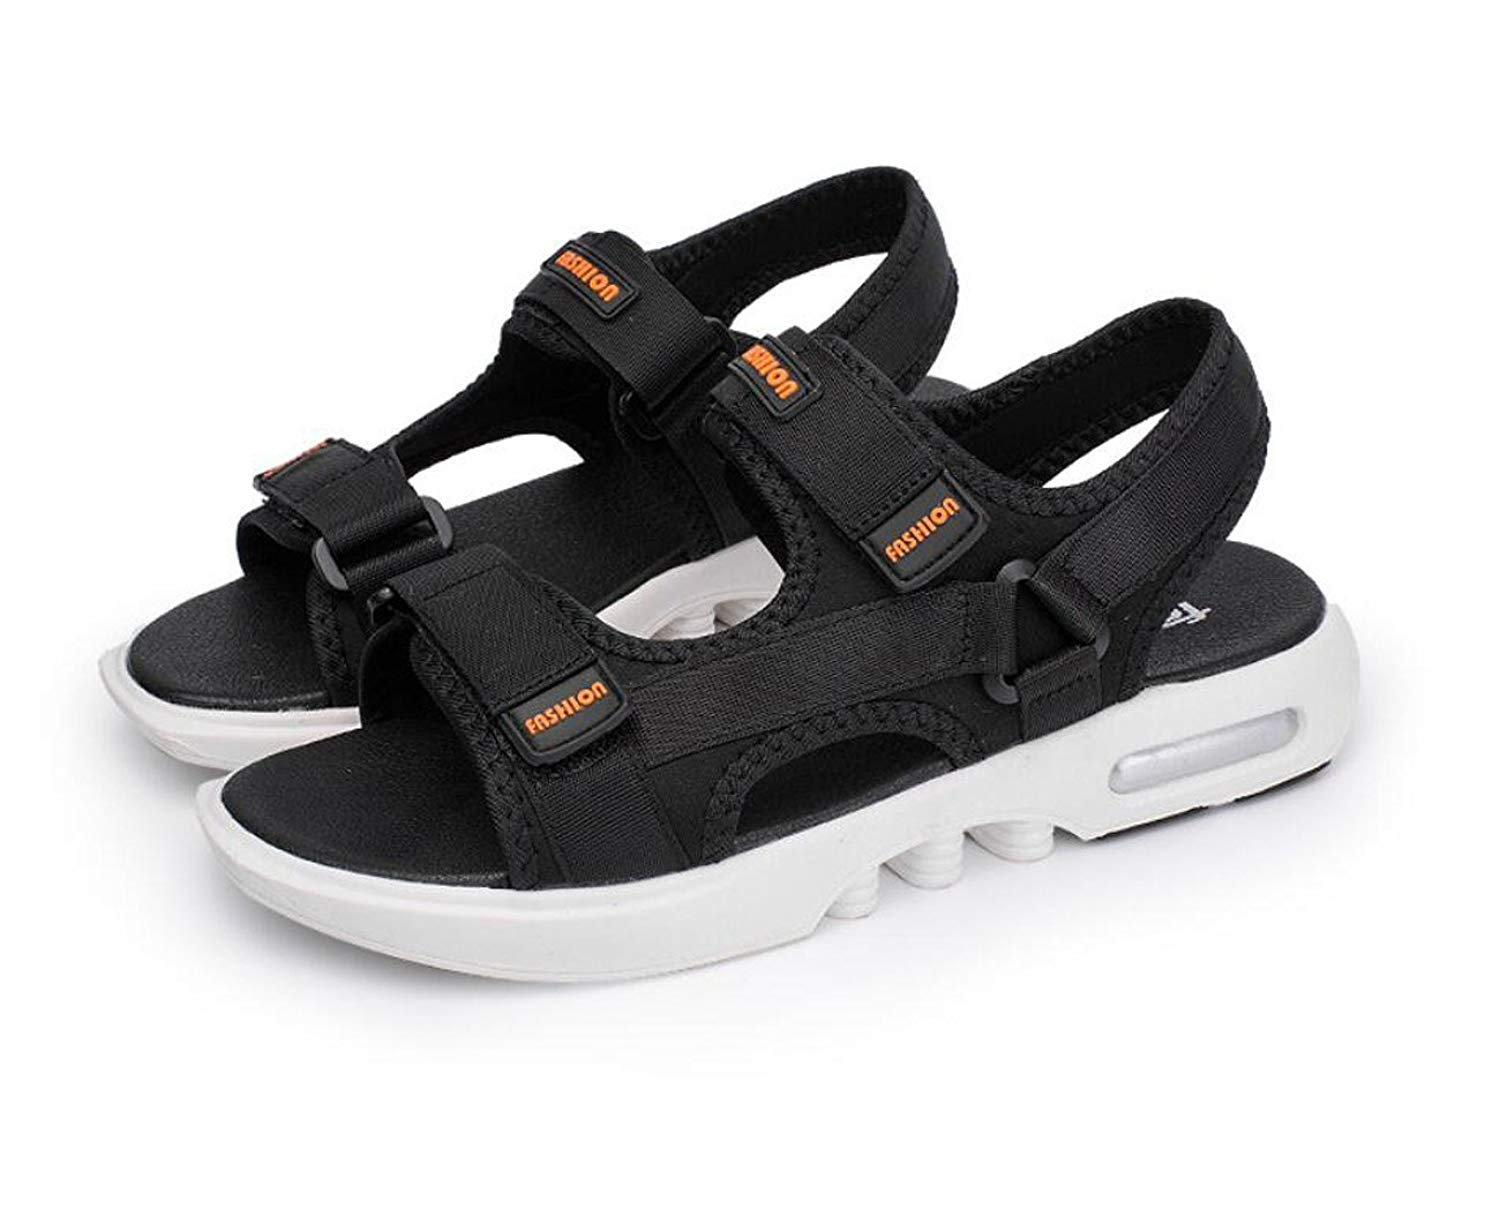 edf2e13d8 Get Quotations · DANDANJIE Mens Sandals Velcro Strap Sports Walking Open Toe  Sandals Flip Flops - for Outdoor Spring